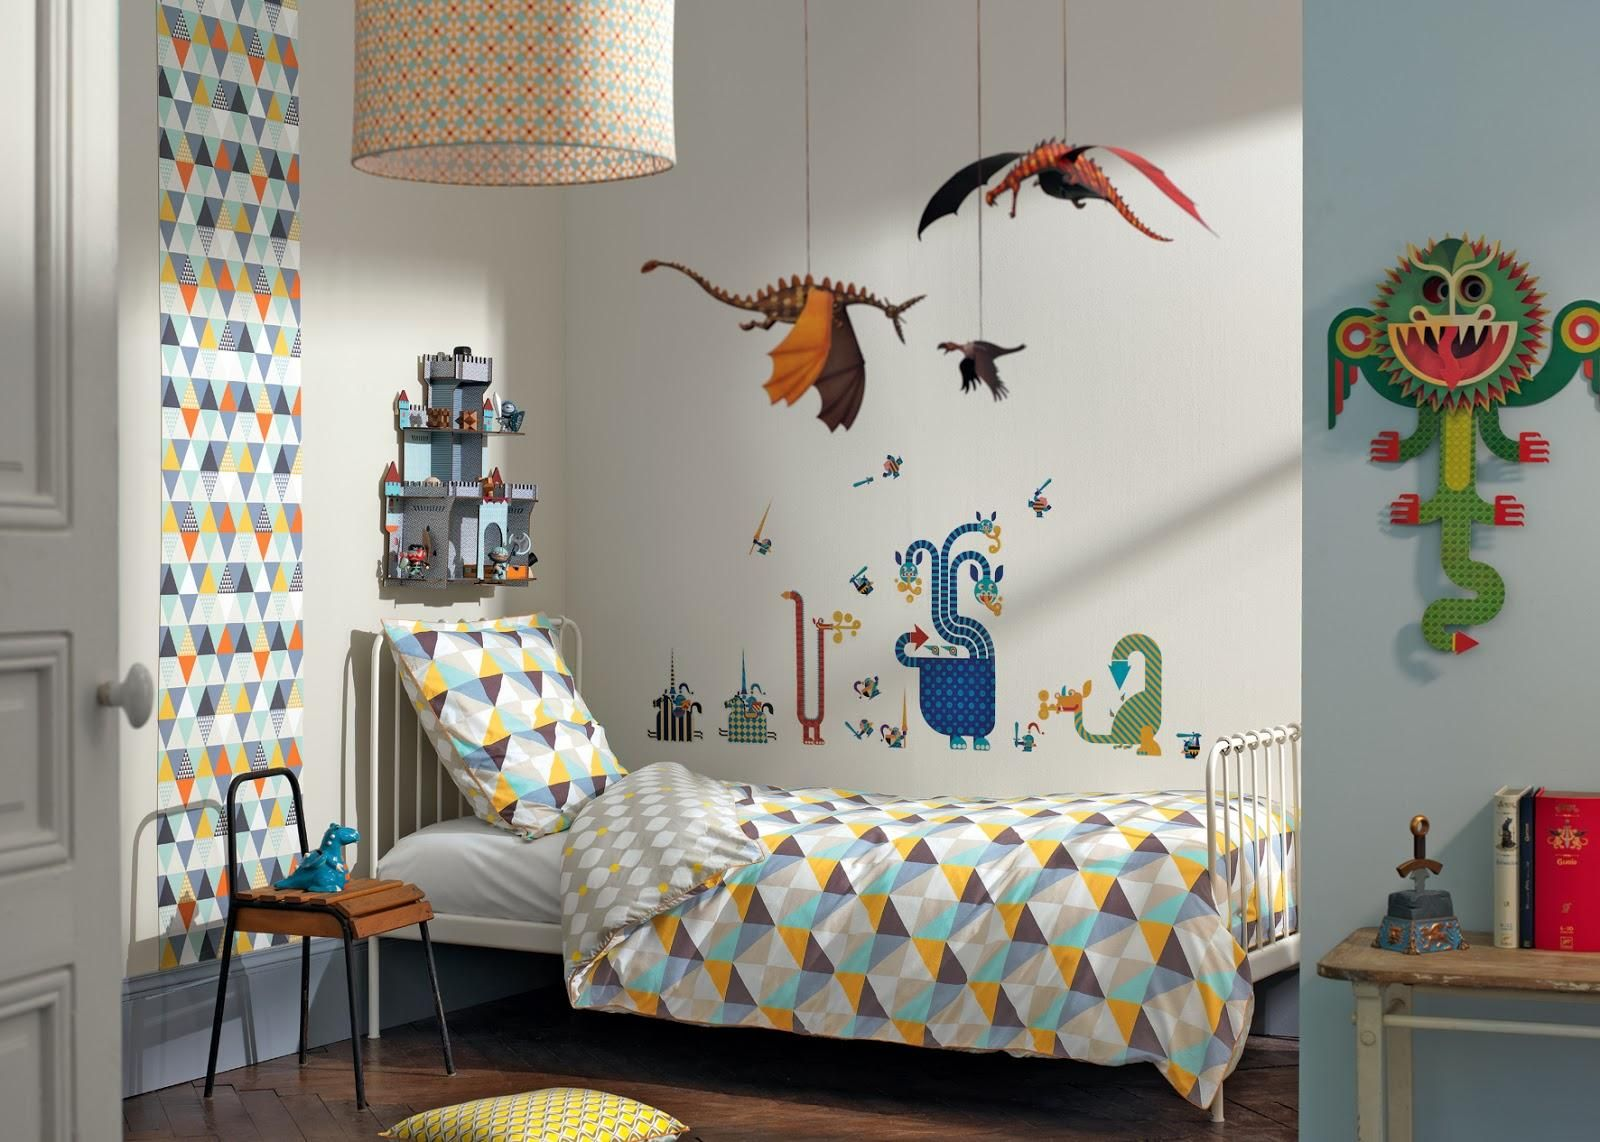 My little big room by djeco l cpzgn arthurs room